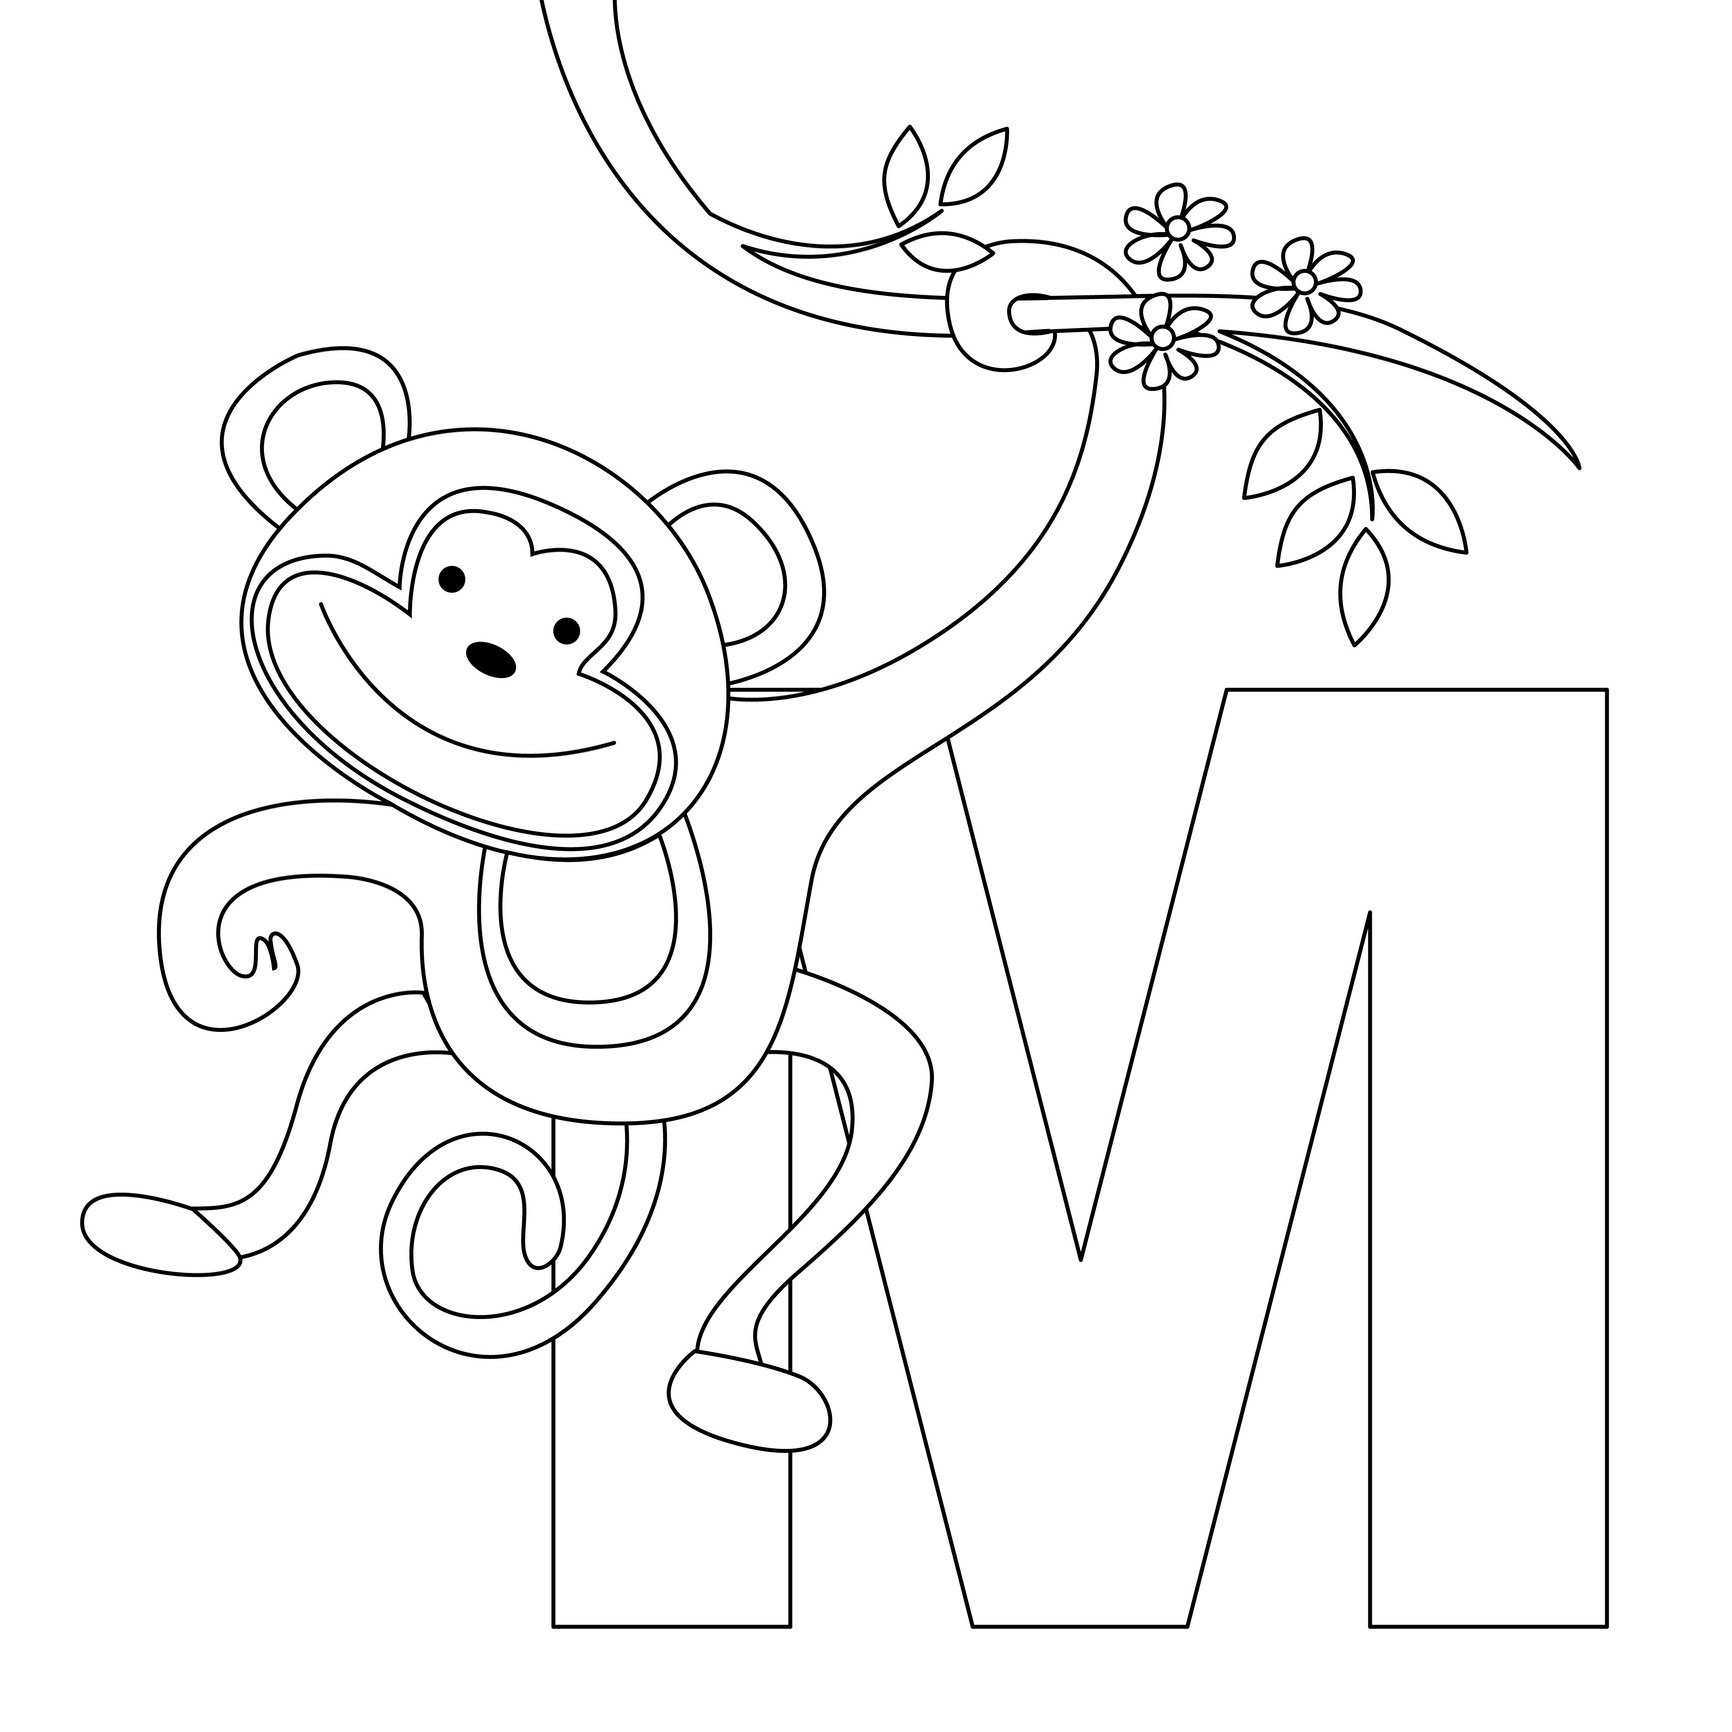 monkey coloring free printable monkey coloring pages for kids coloring monkey 1 2